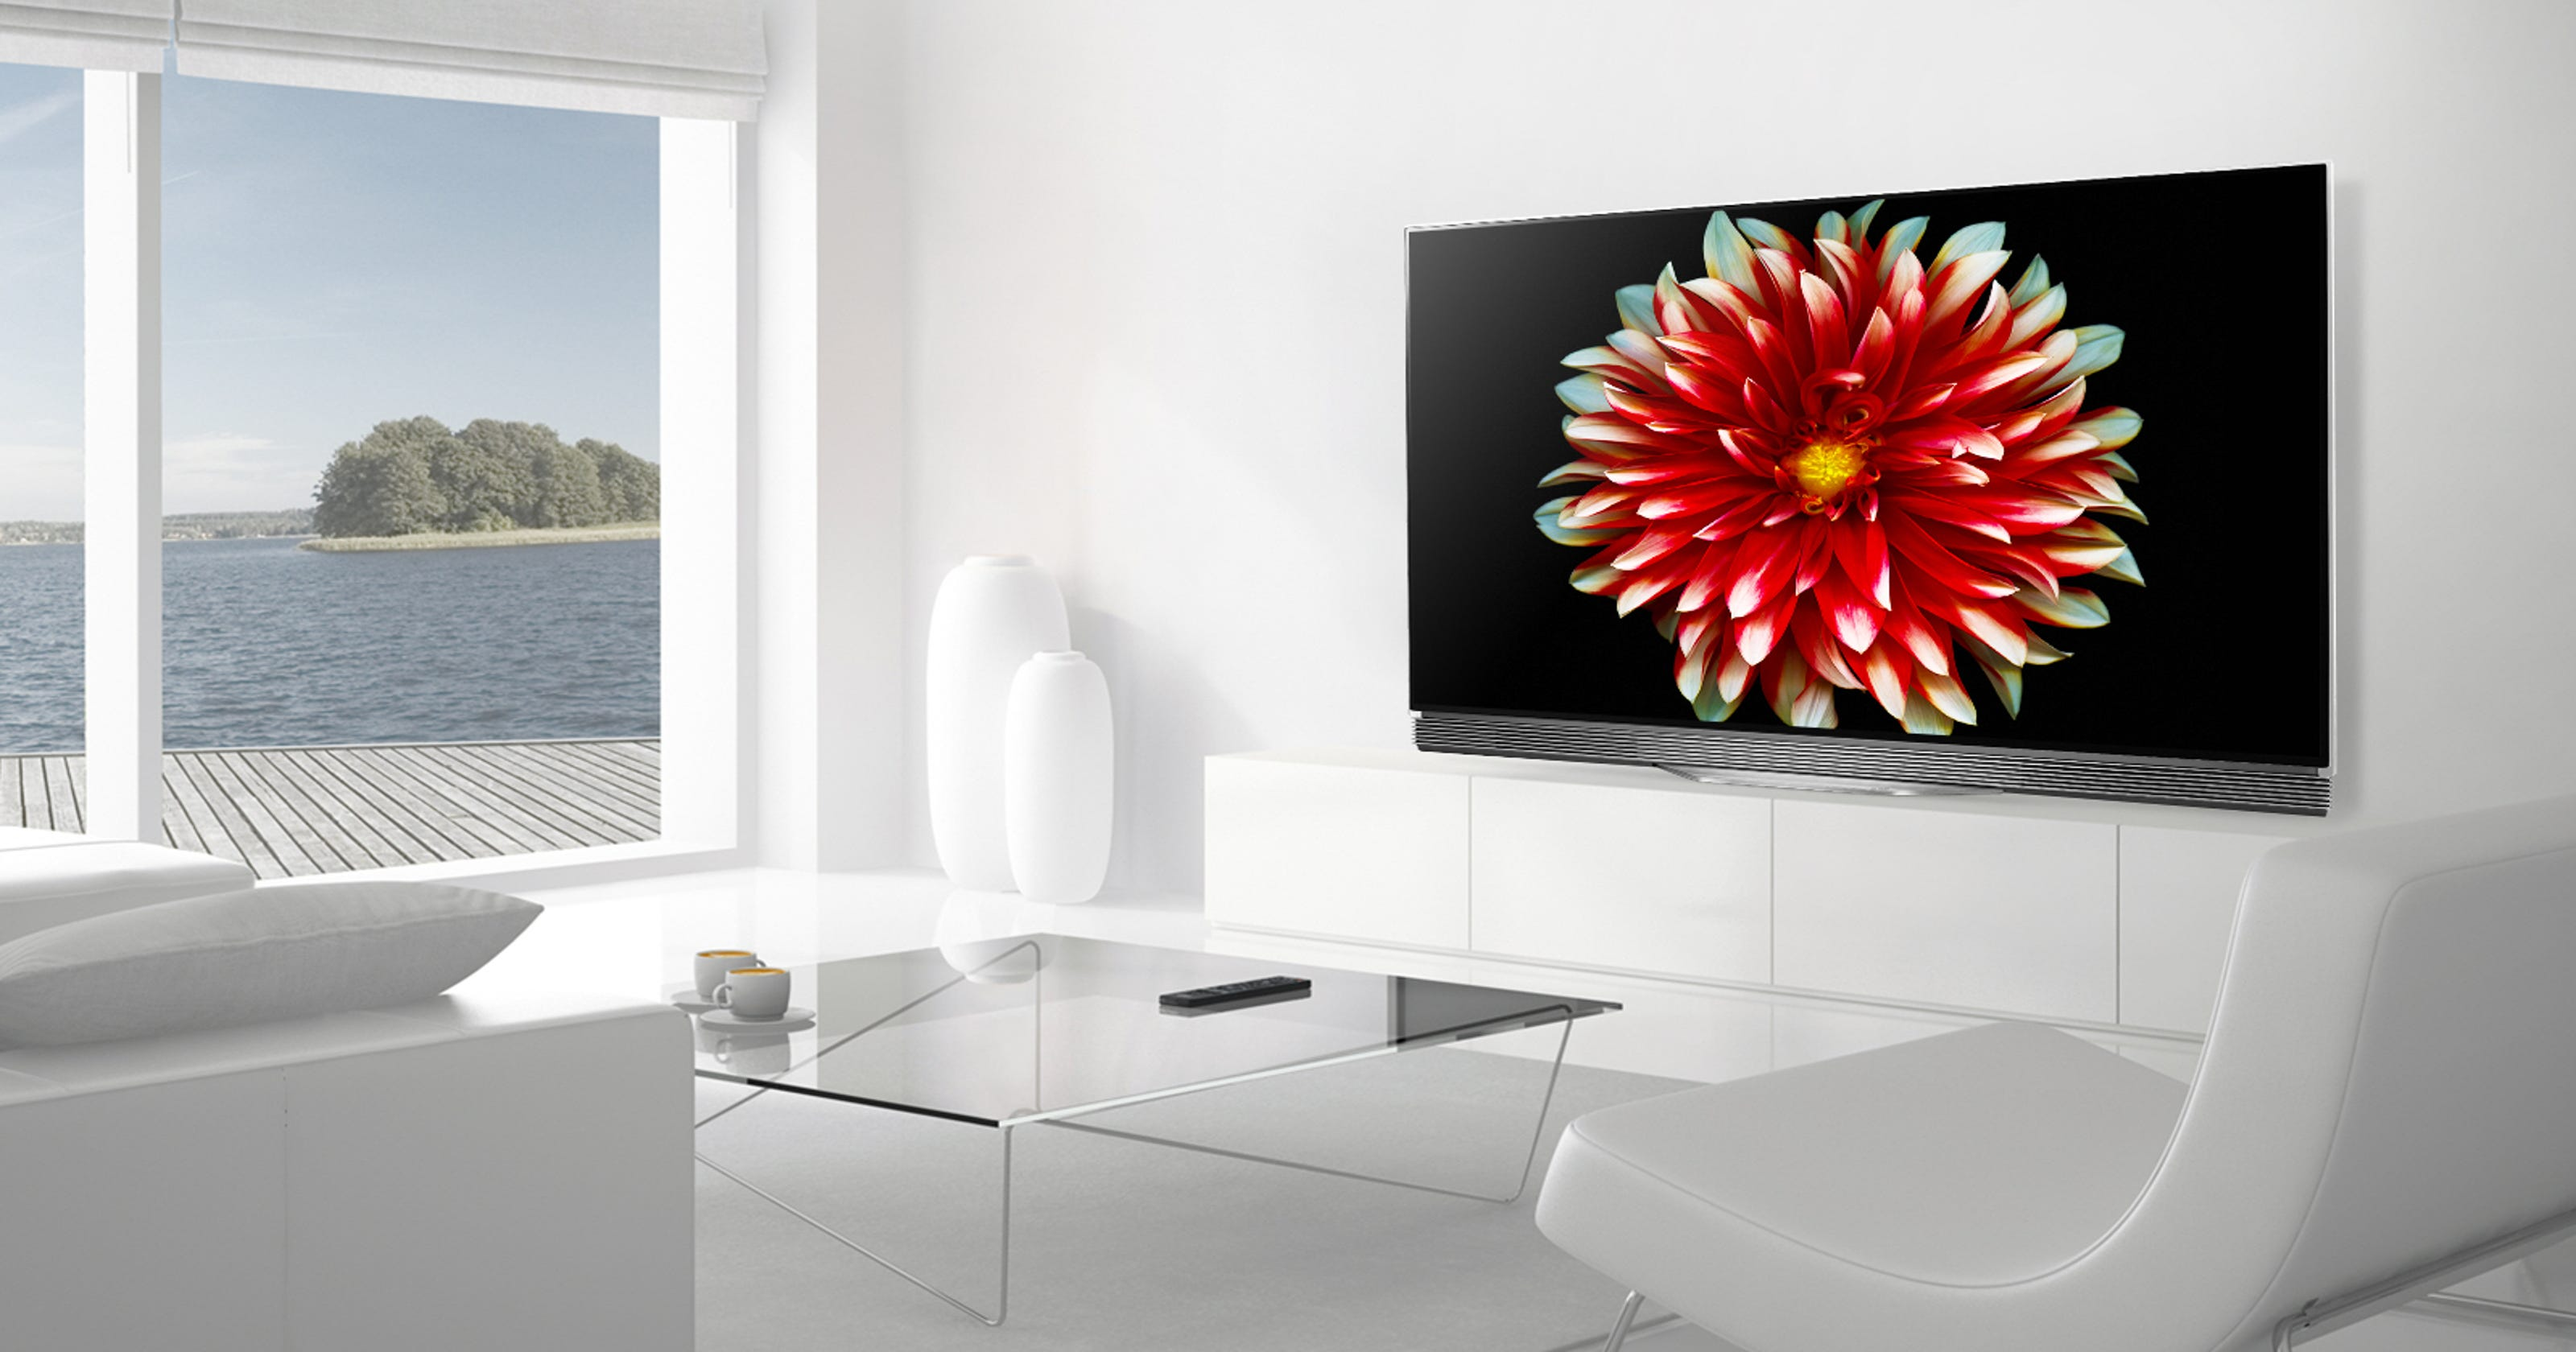 Should you buy an OLED, LED or QLED TV?